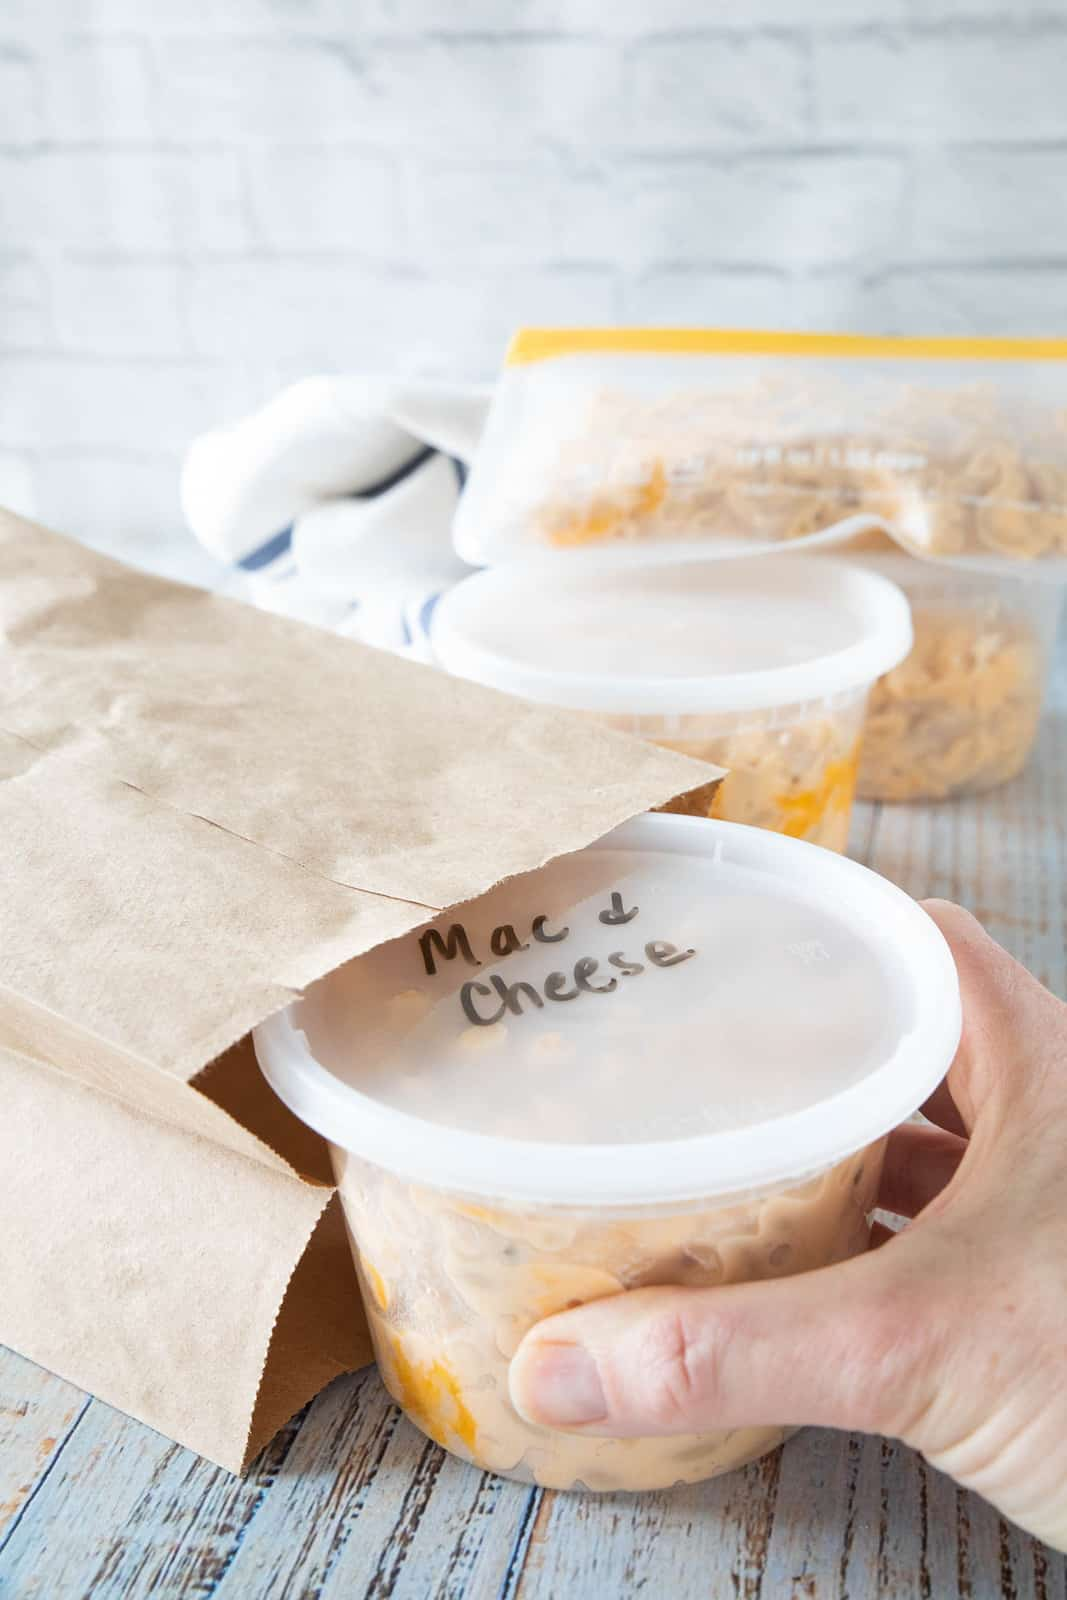 Cooked Mac & cheese in a container being placed by a hand into a brown paper bag.